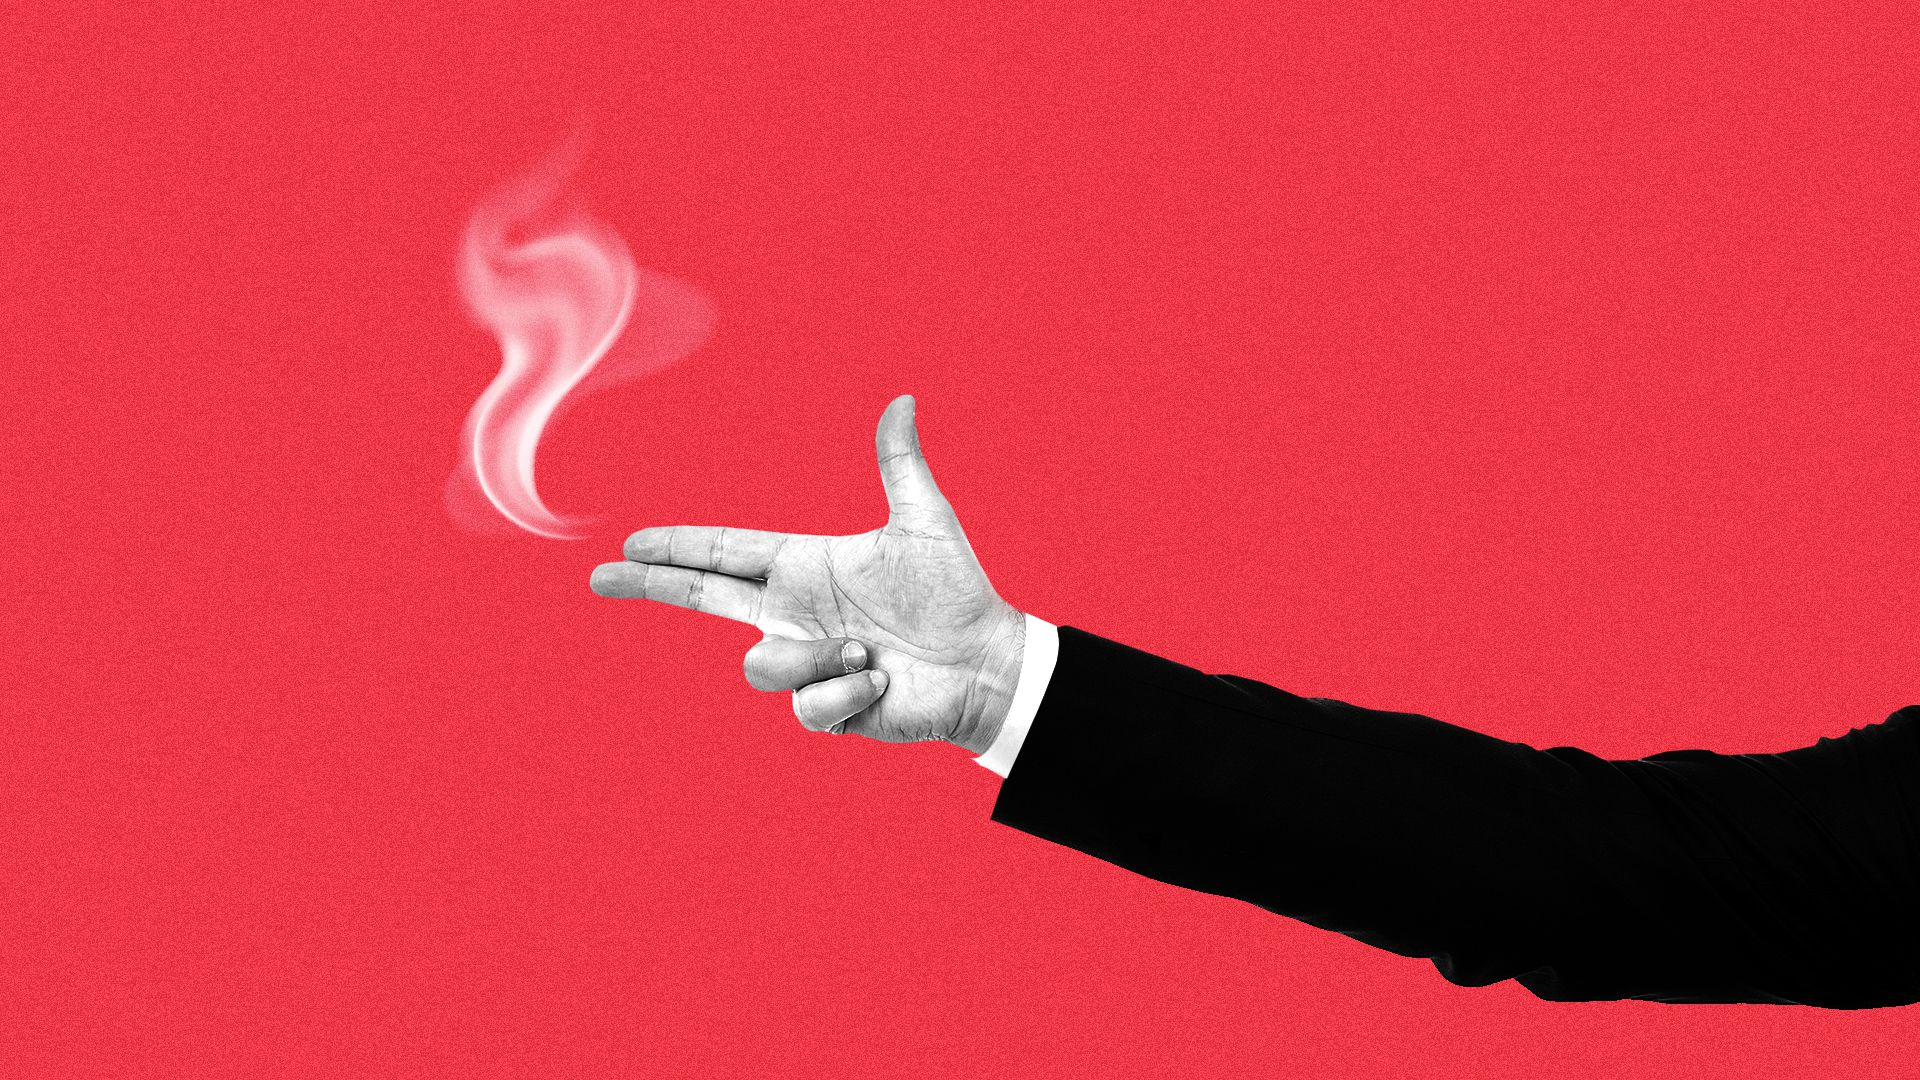 lllustration of an arm in a business suit making a gun sign with smoke coming out of the fingertips